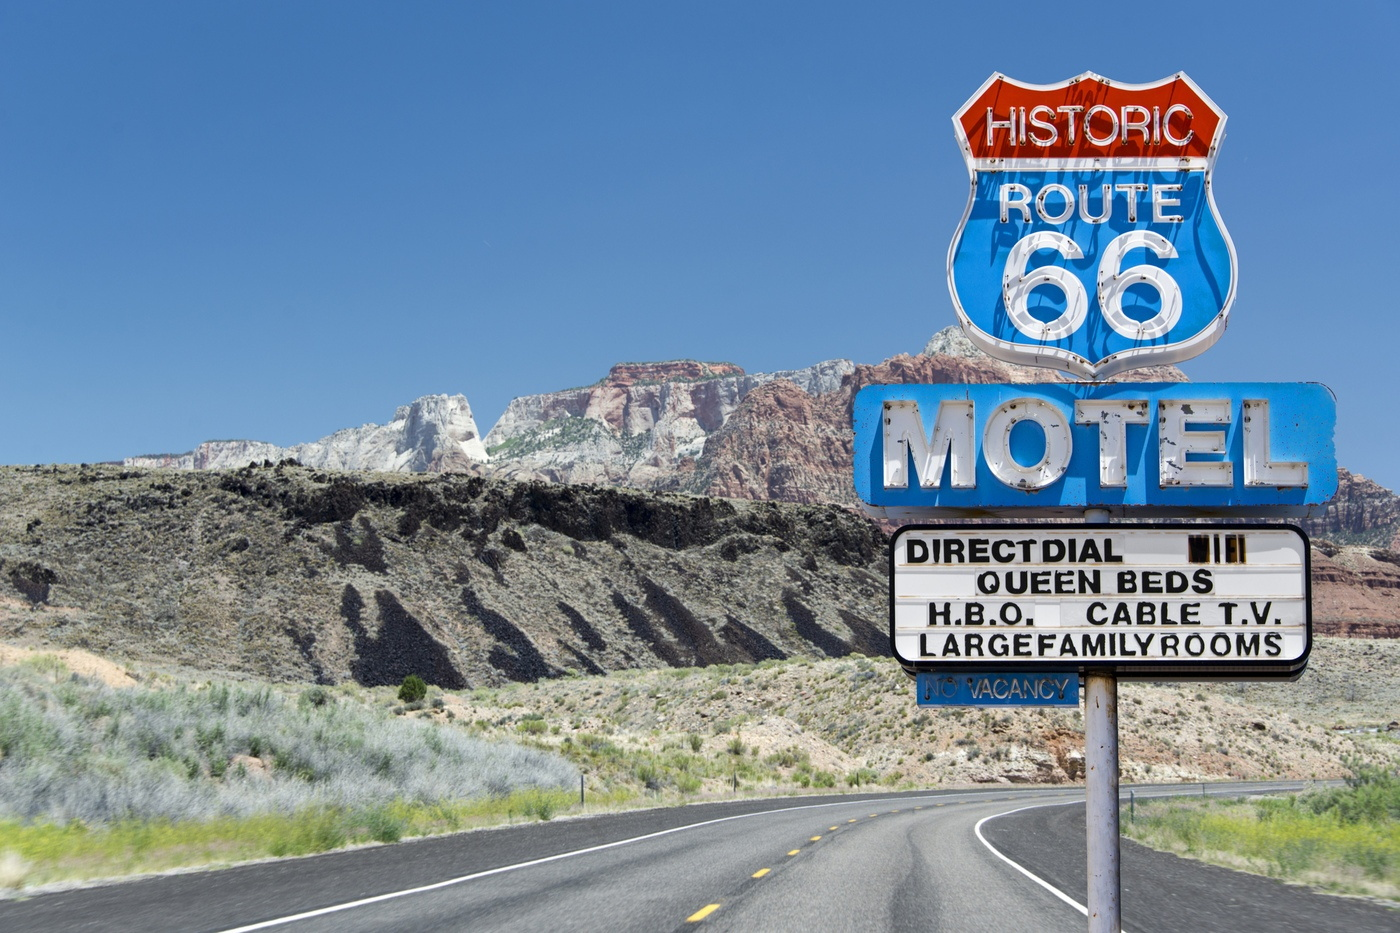 Route 66 American Road Trip 20 travel bucket list ideas to do before 40 20 Travel Bucket List Ideas To do before 40 an epic american road trip b36c